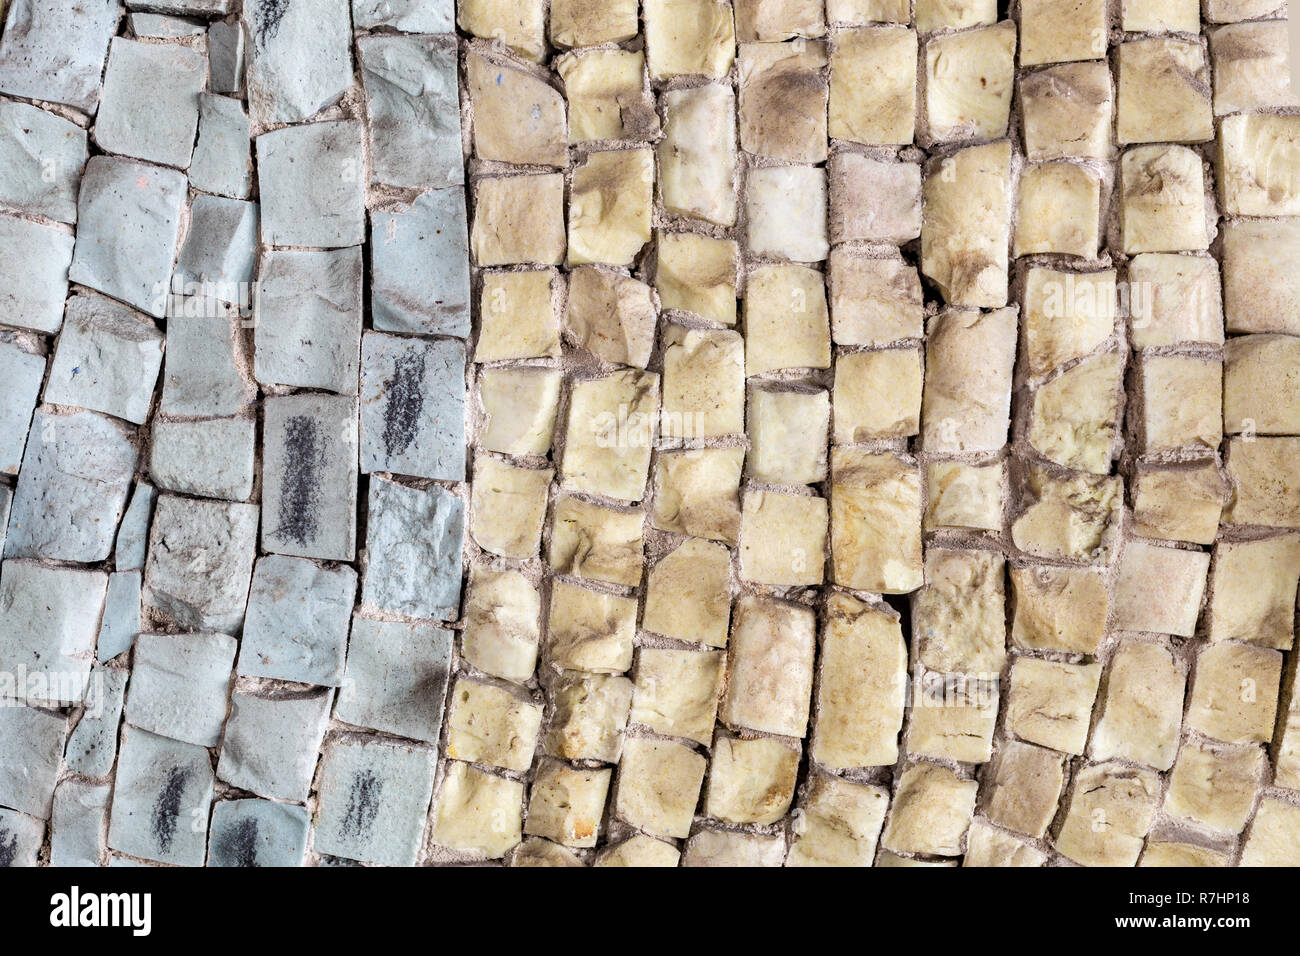 Close-up two tone old vintage marble stone mosaic. - Stock Image